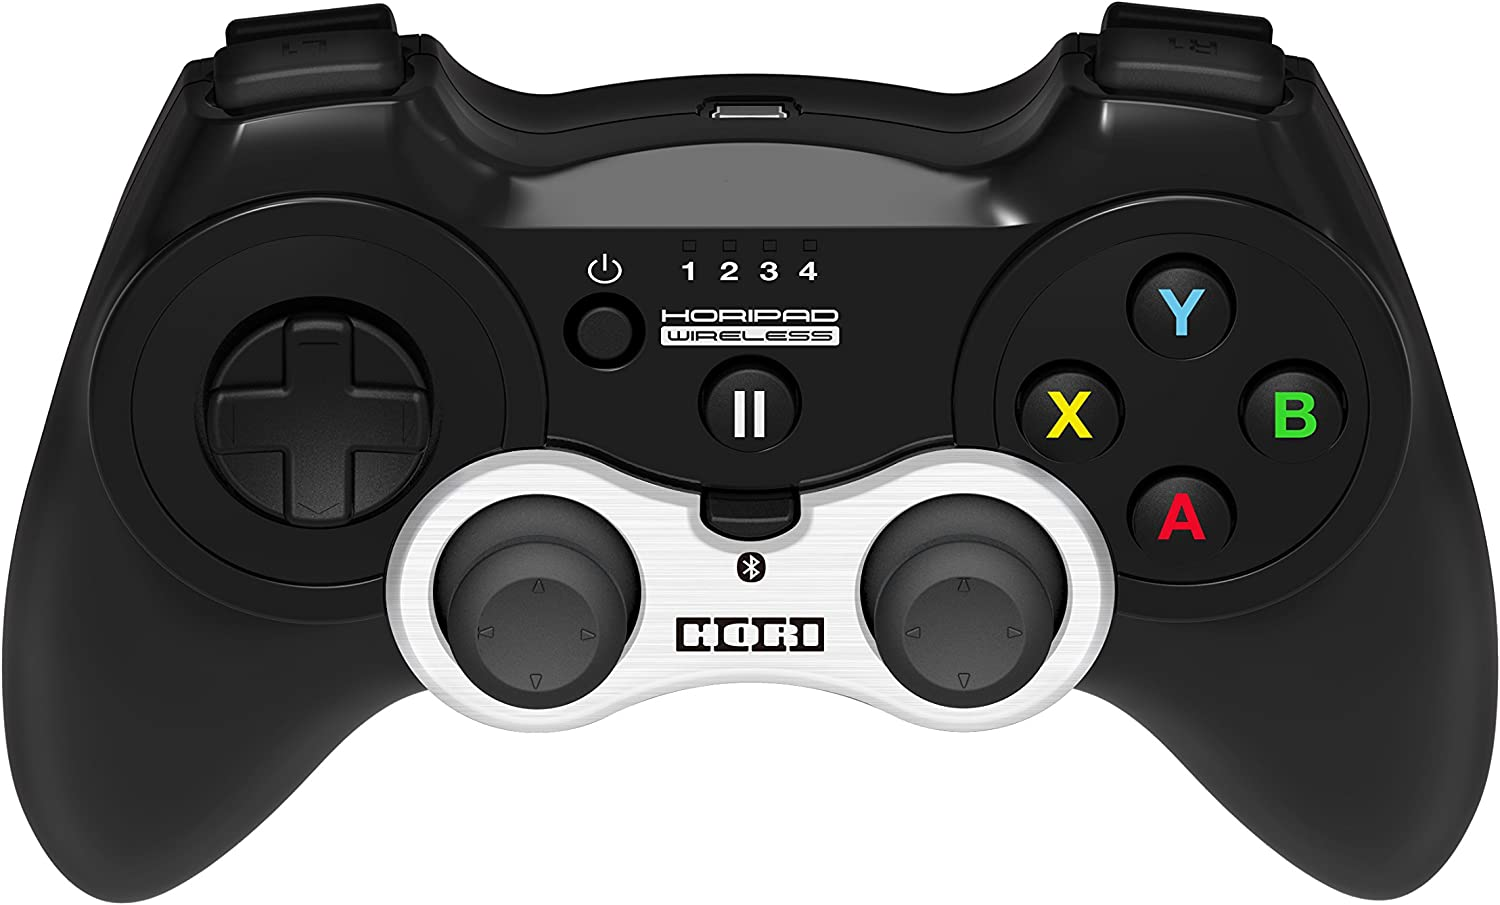 HORI HORIPAD Wireless Gaming Controller for iPhone, iPad and iPod touch - Mac HIP-043U